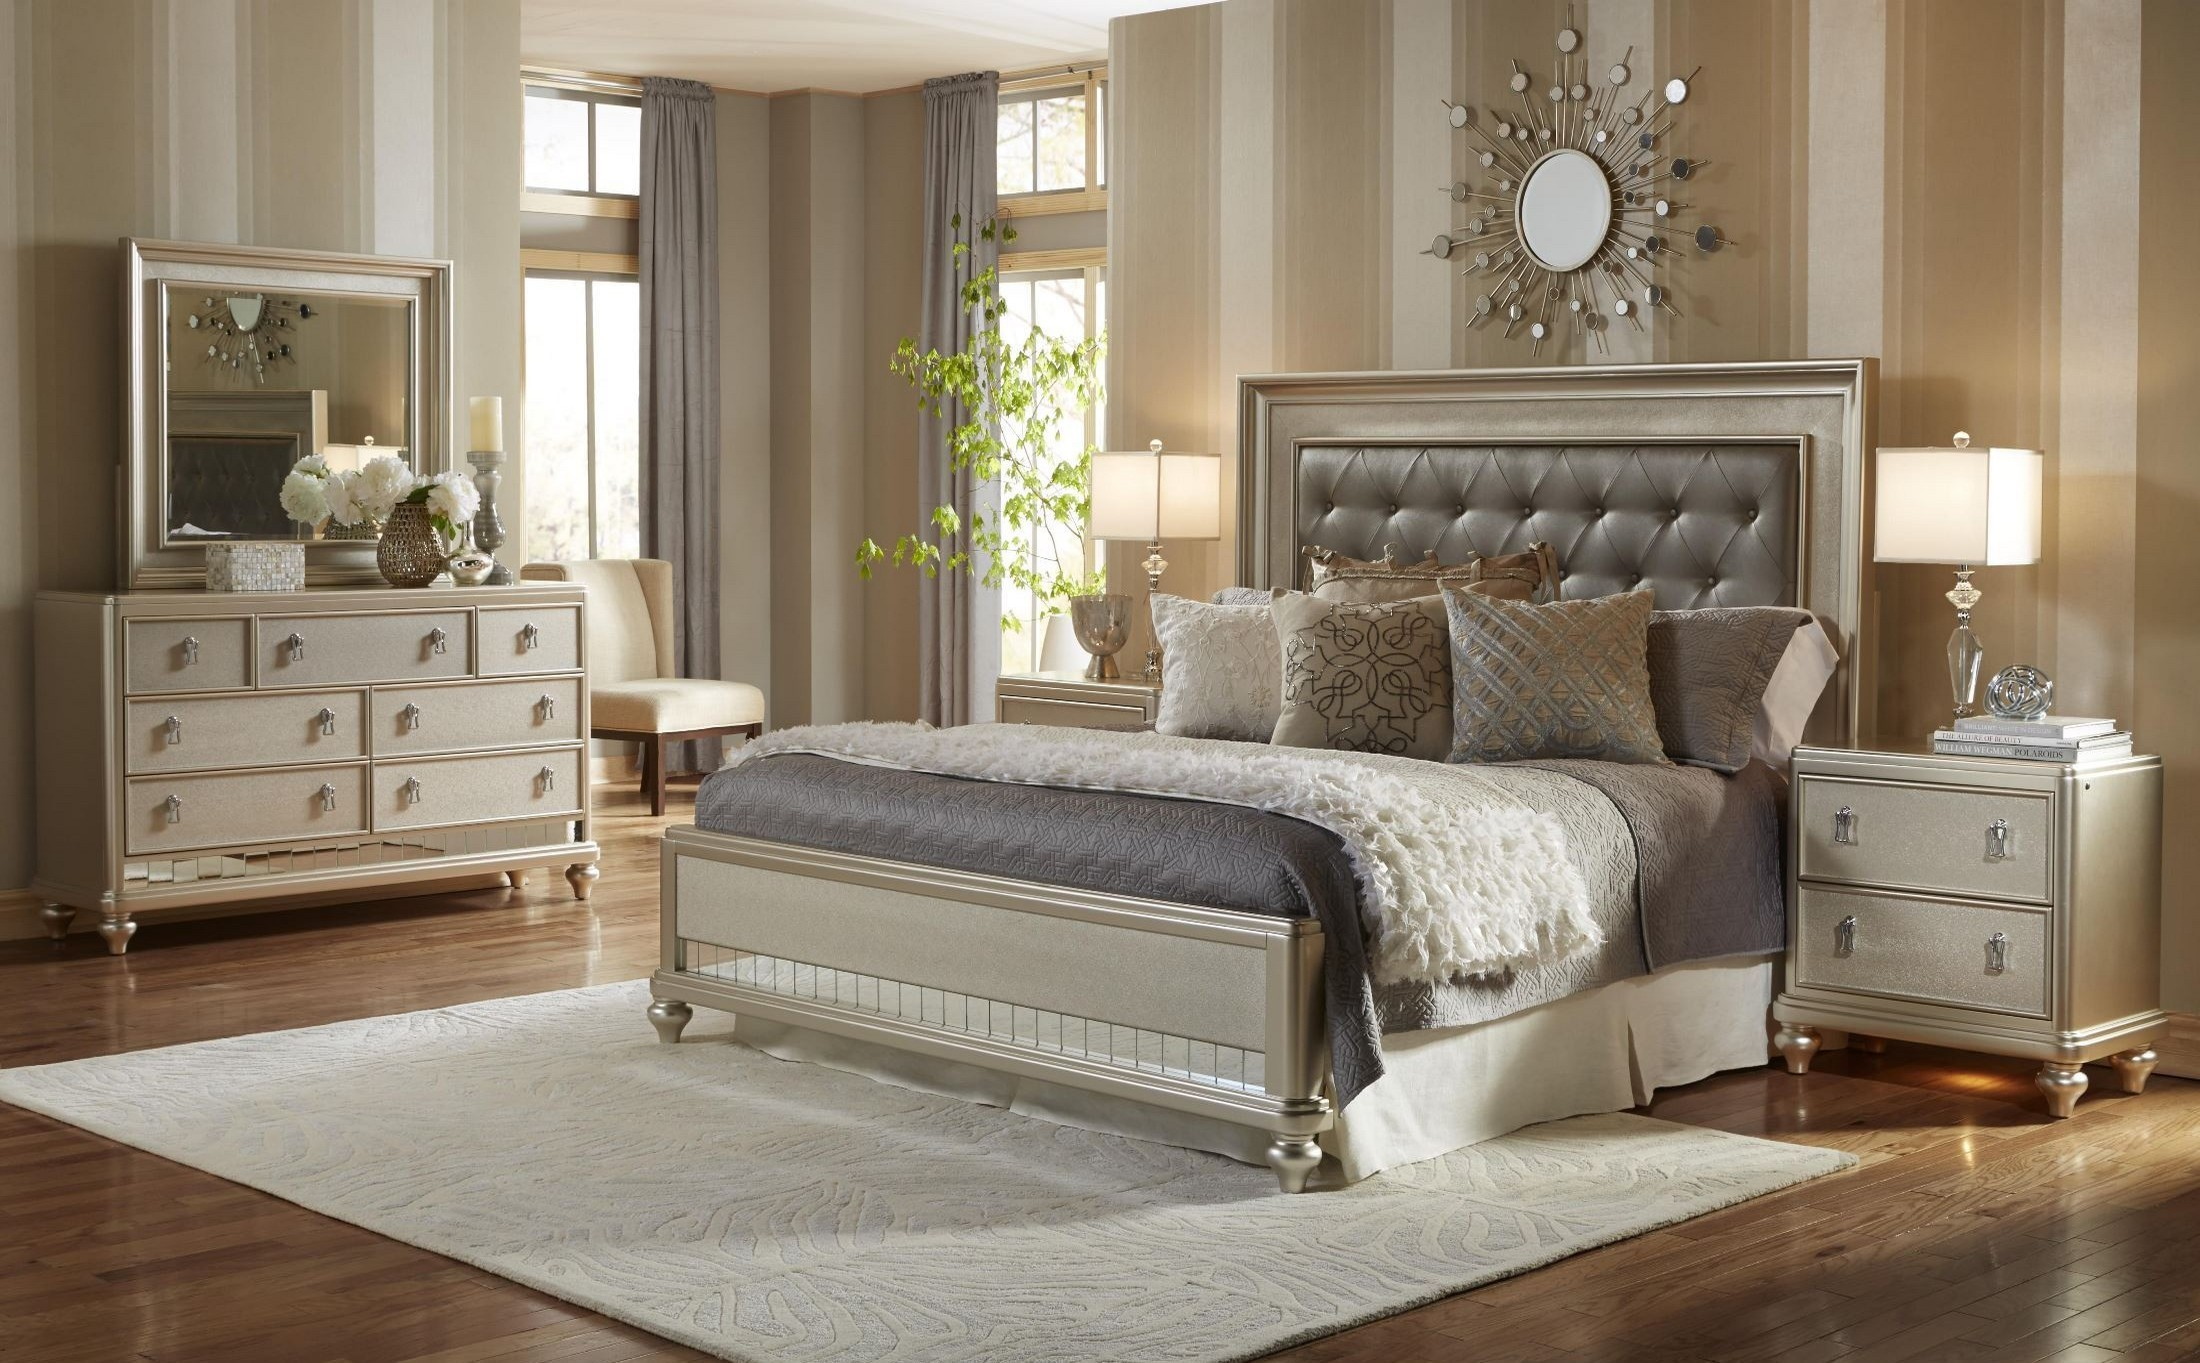 Diva Panel Bedroom Set From Samuel Lawrence 8808 255 257